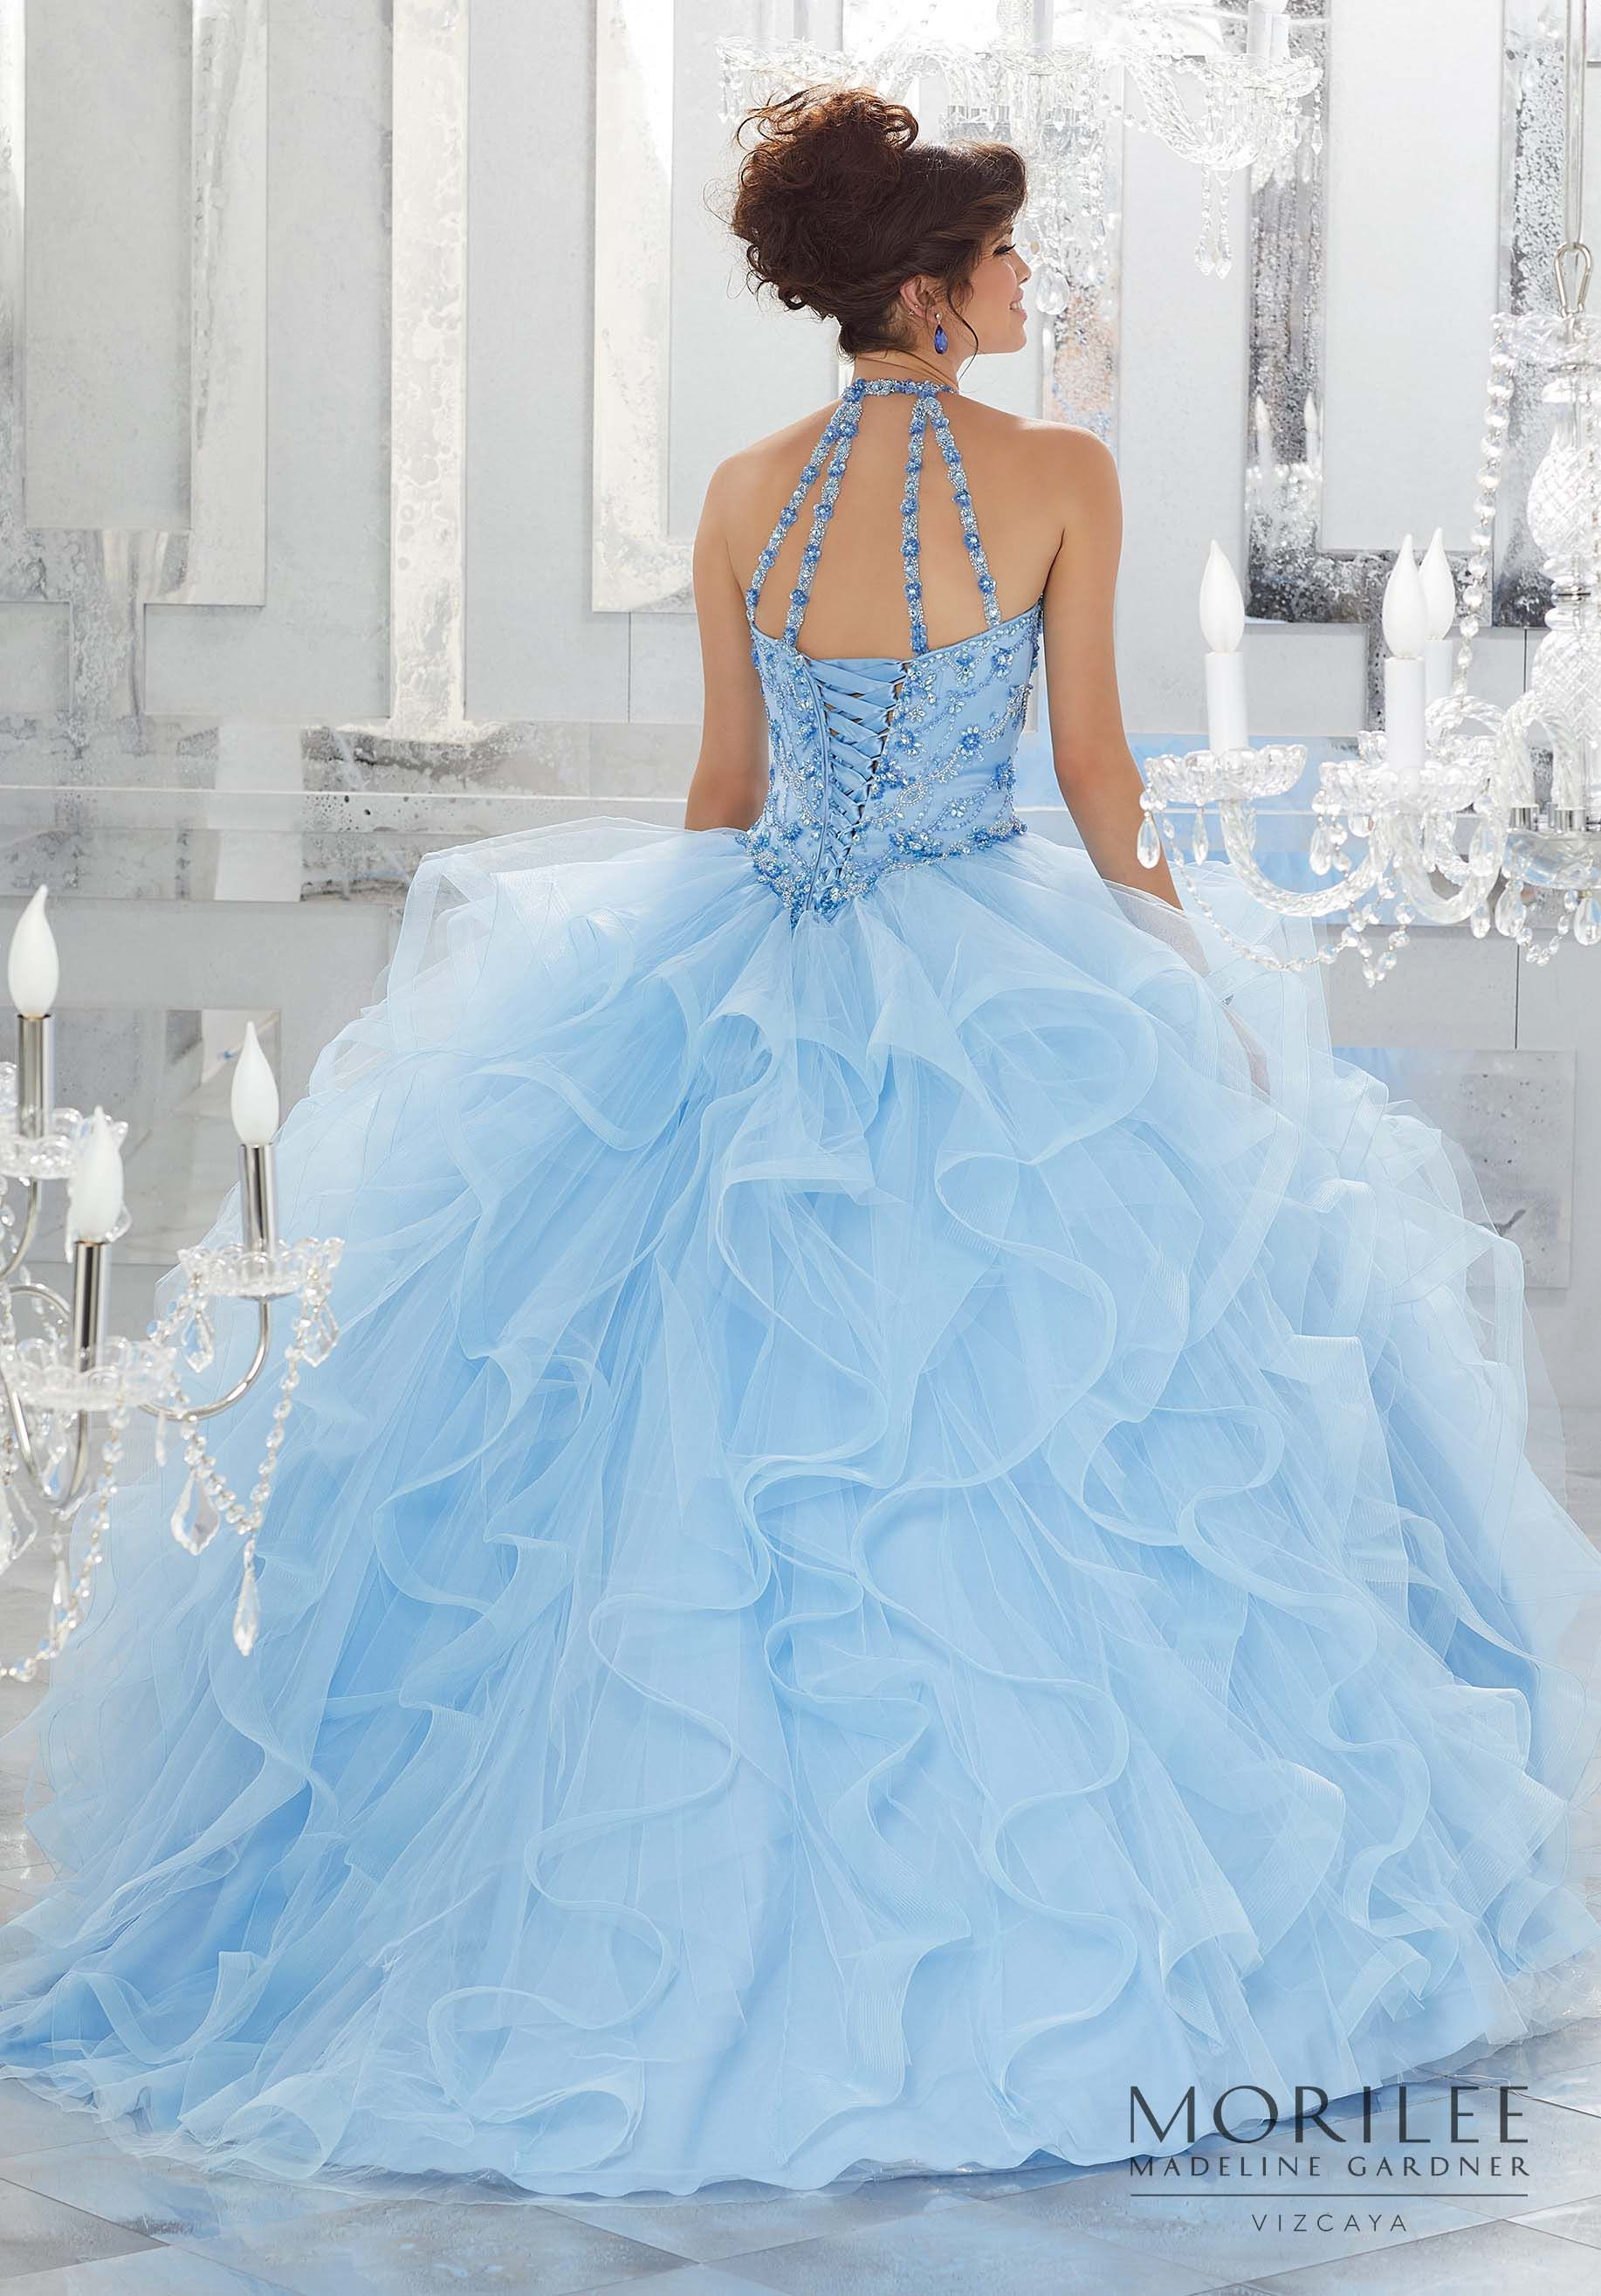 Blue Cinderella Tulle Princess Ball Gown Quinceanera Dress Featuring A Beautifully Beaded Bodi Quincenera Dresses Light Blue Quinceanera Dresses Quince Dresses [ 2630 x 1834 Pixel ]